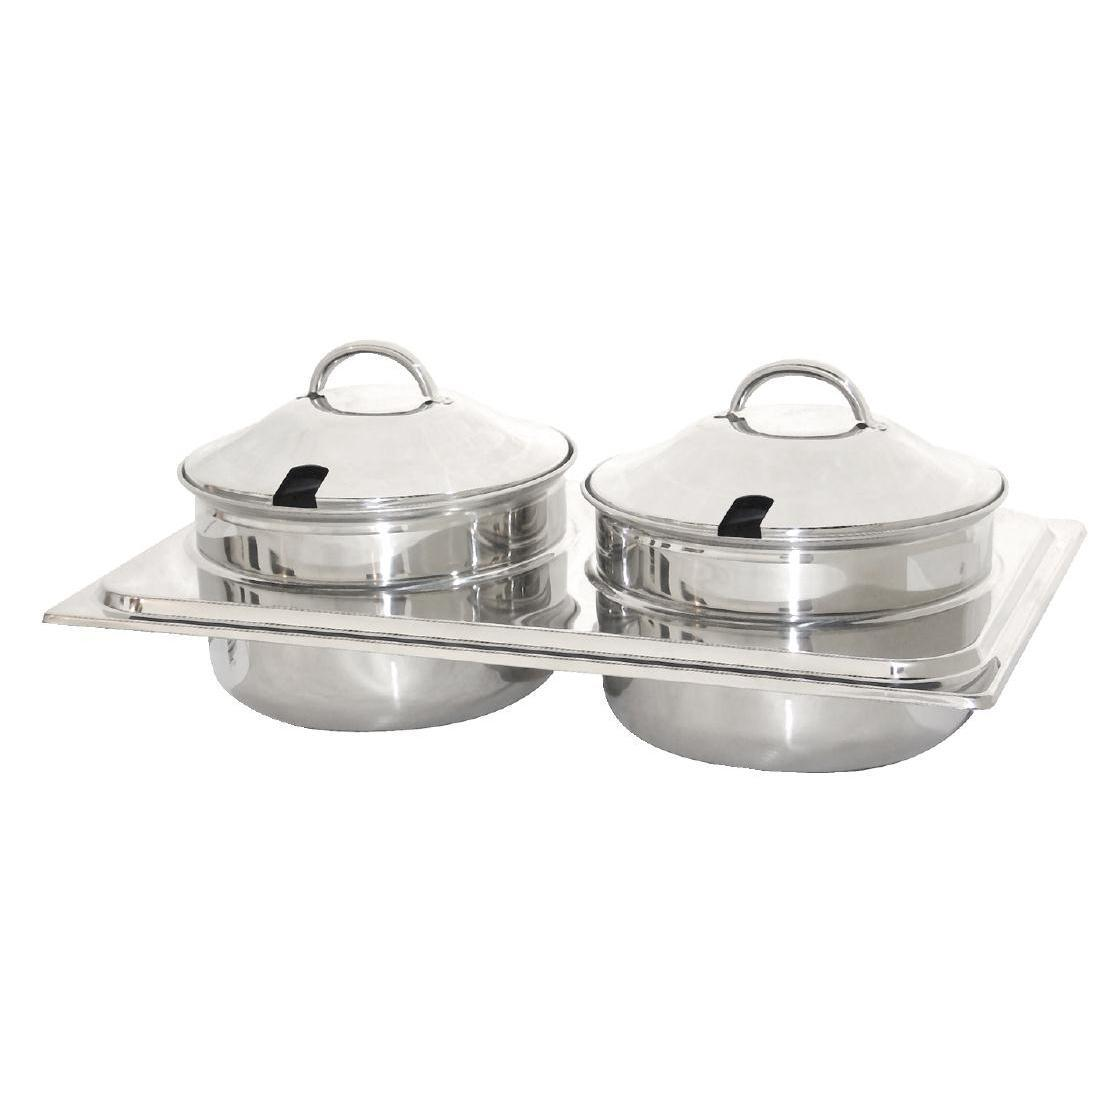 Bain Marie Set for Chafing Dish